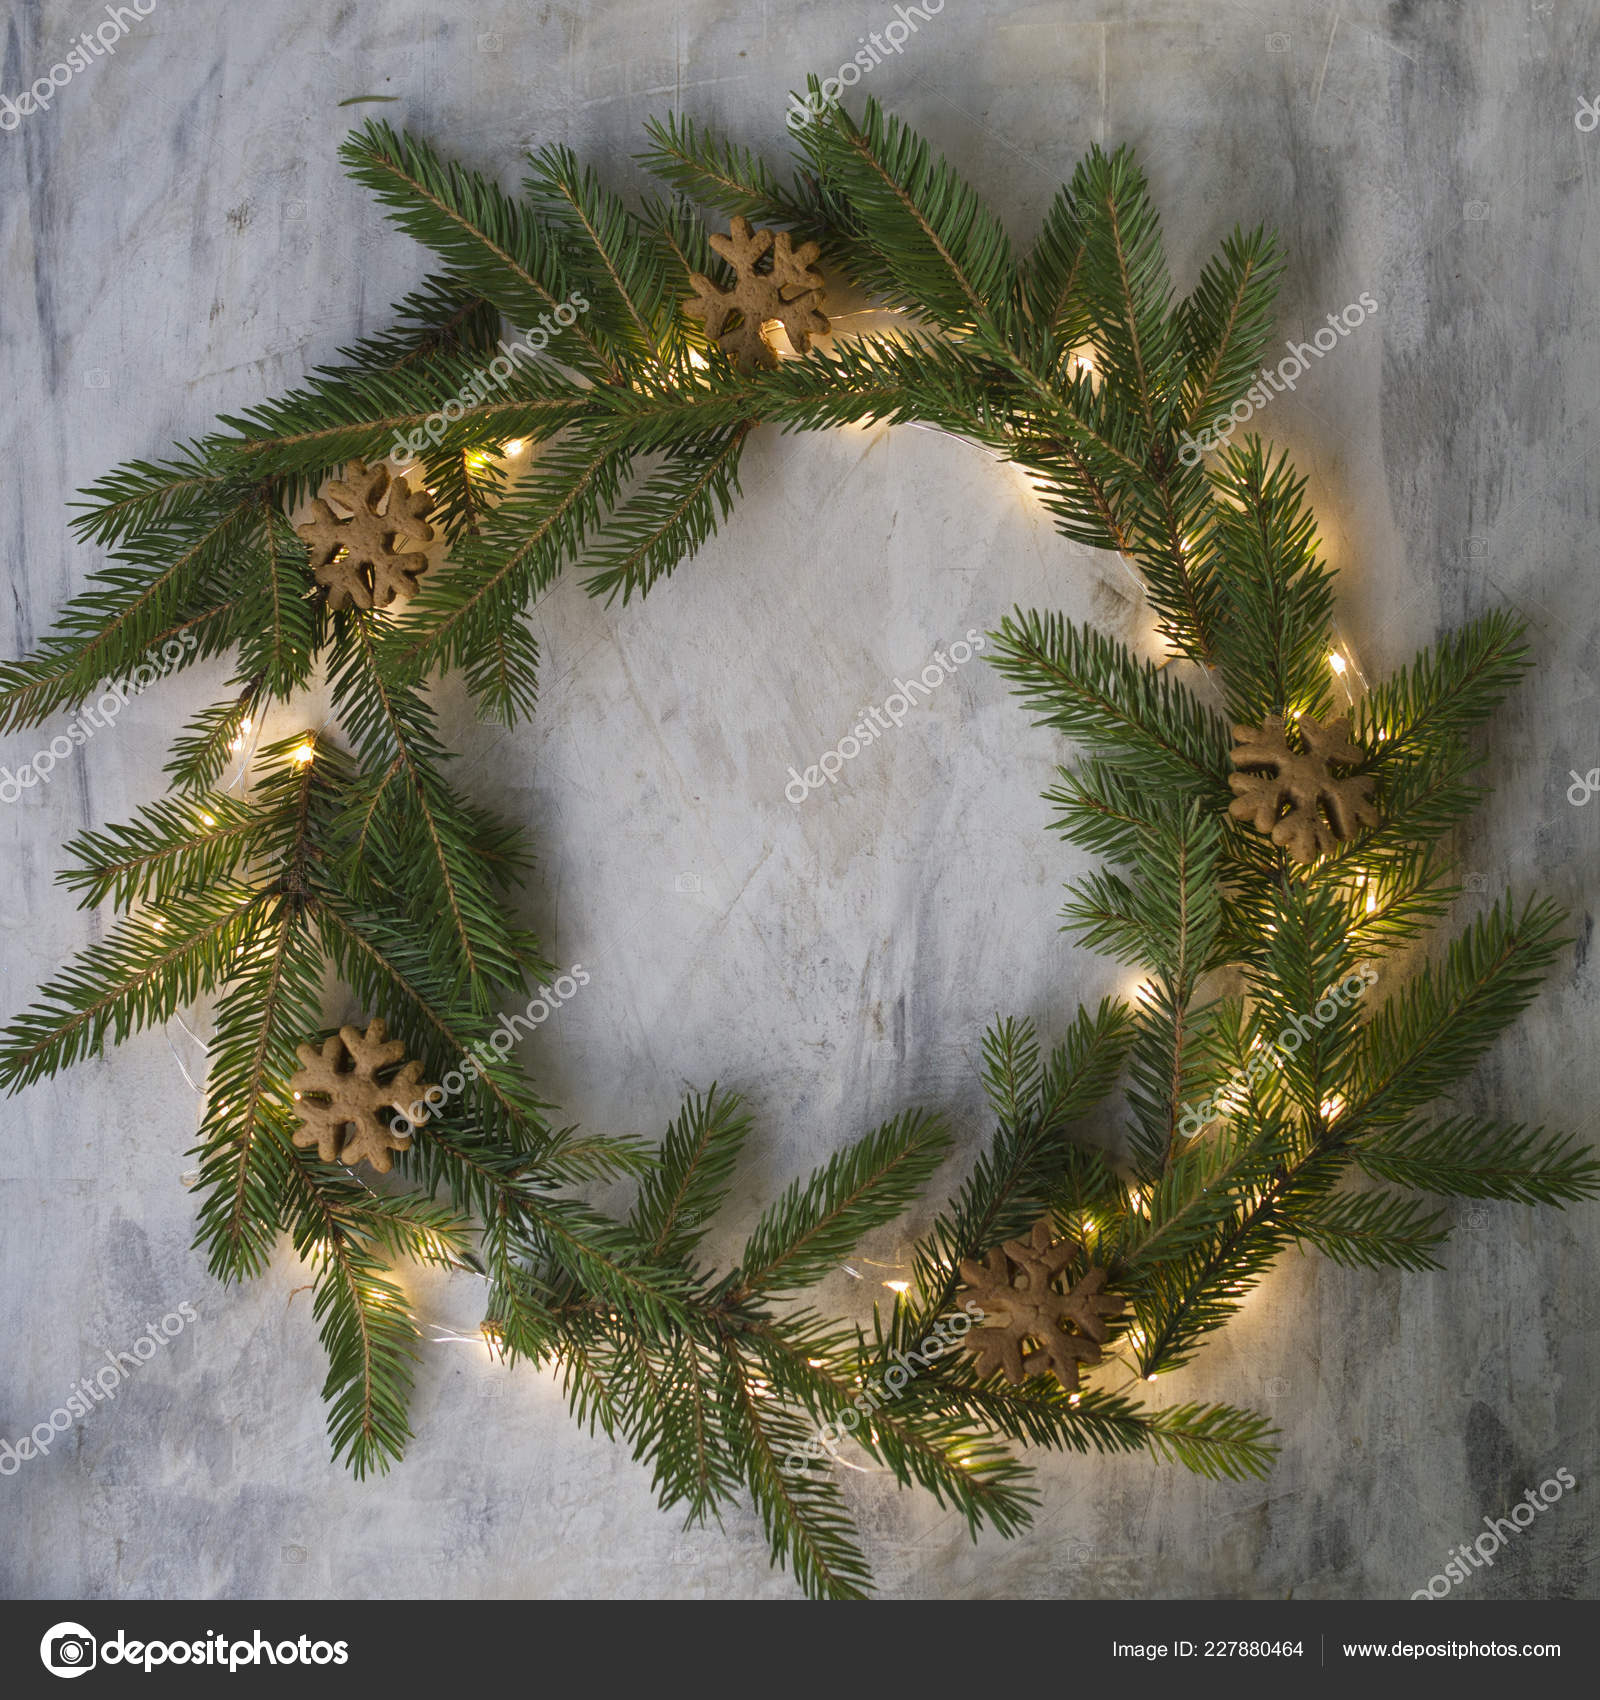 christmas wreath made of fir branches cookies and glowing lights on gray background new year background christmas card flat lay copy space photo by